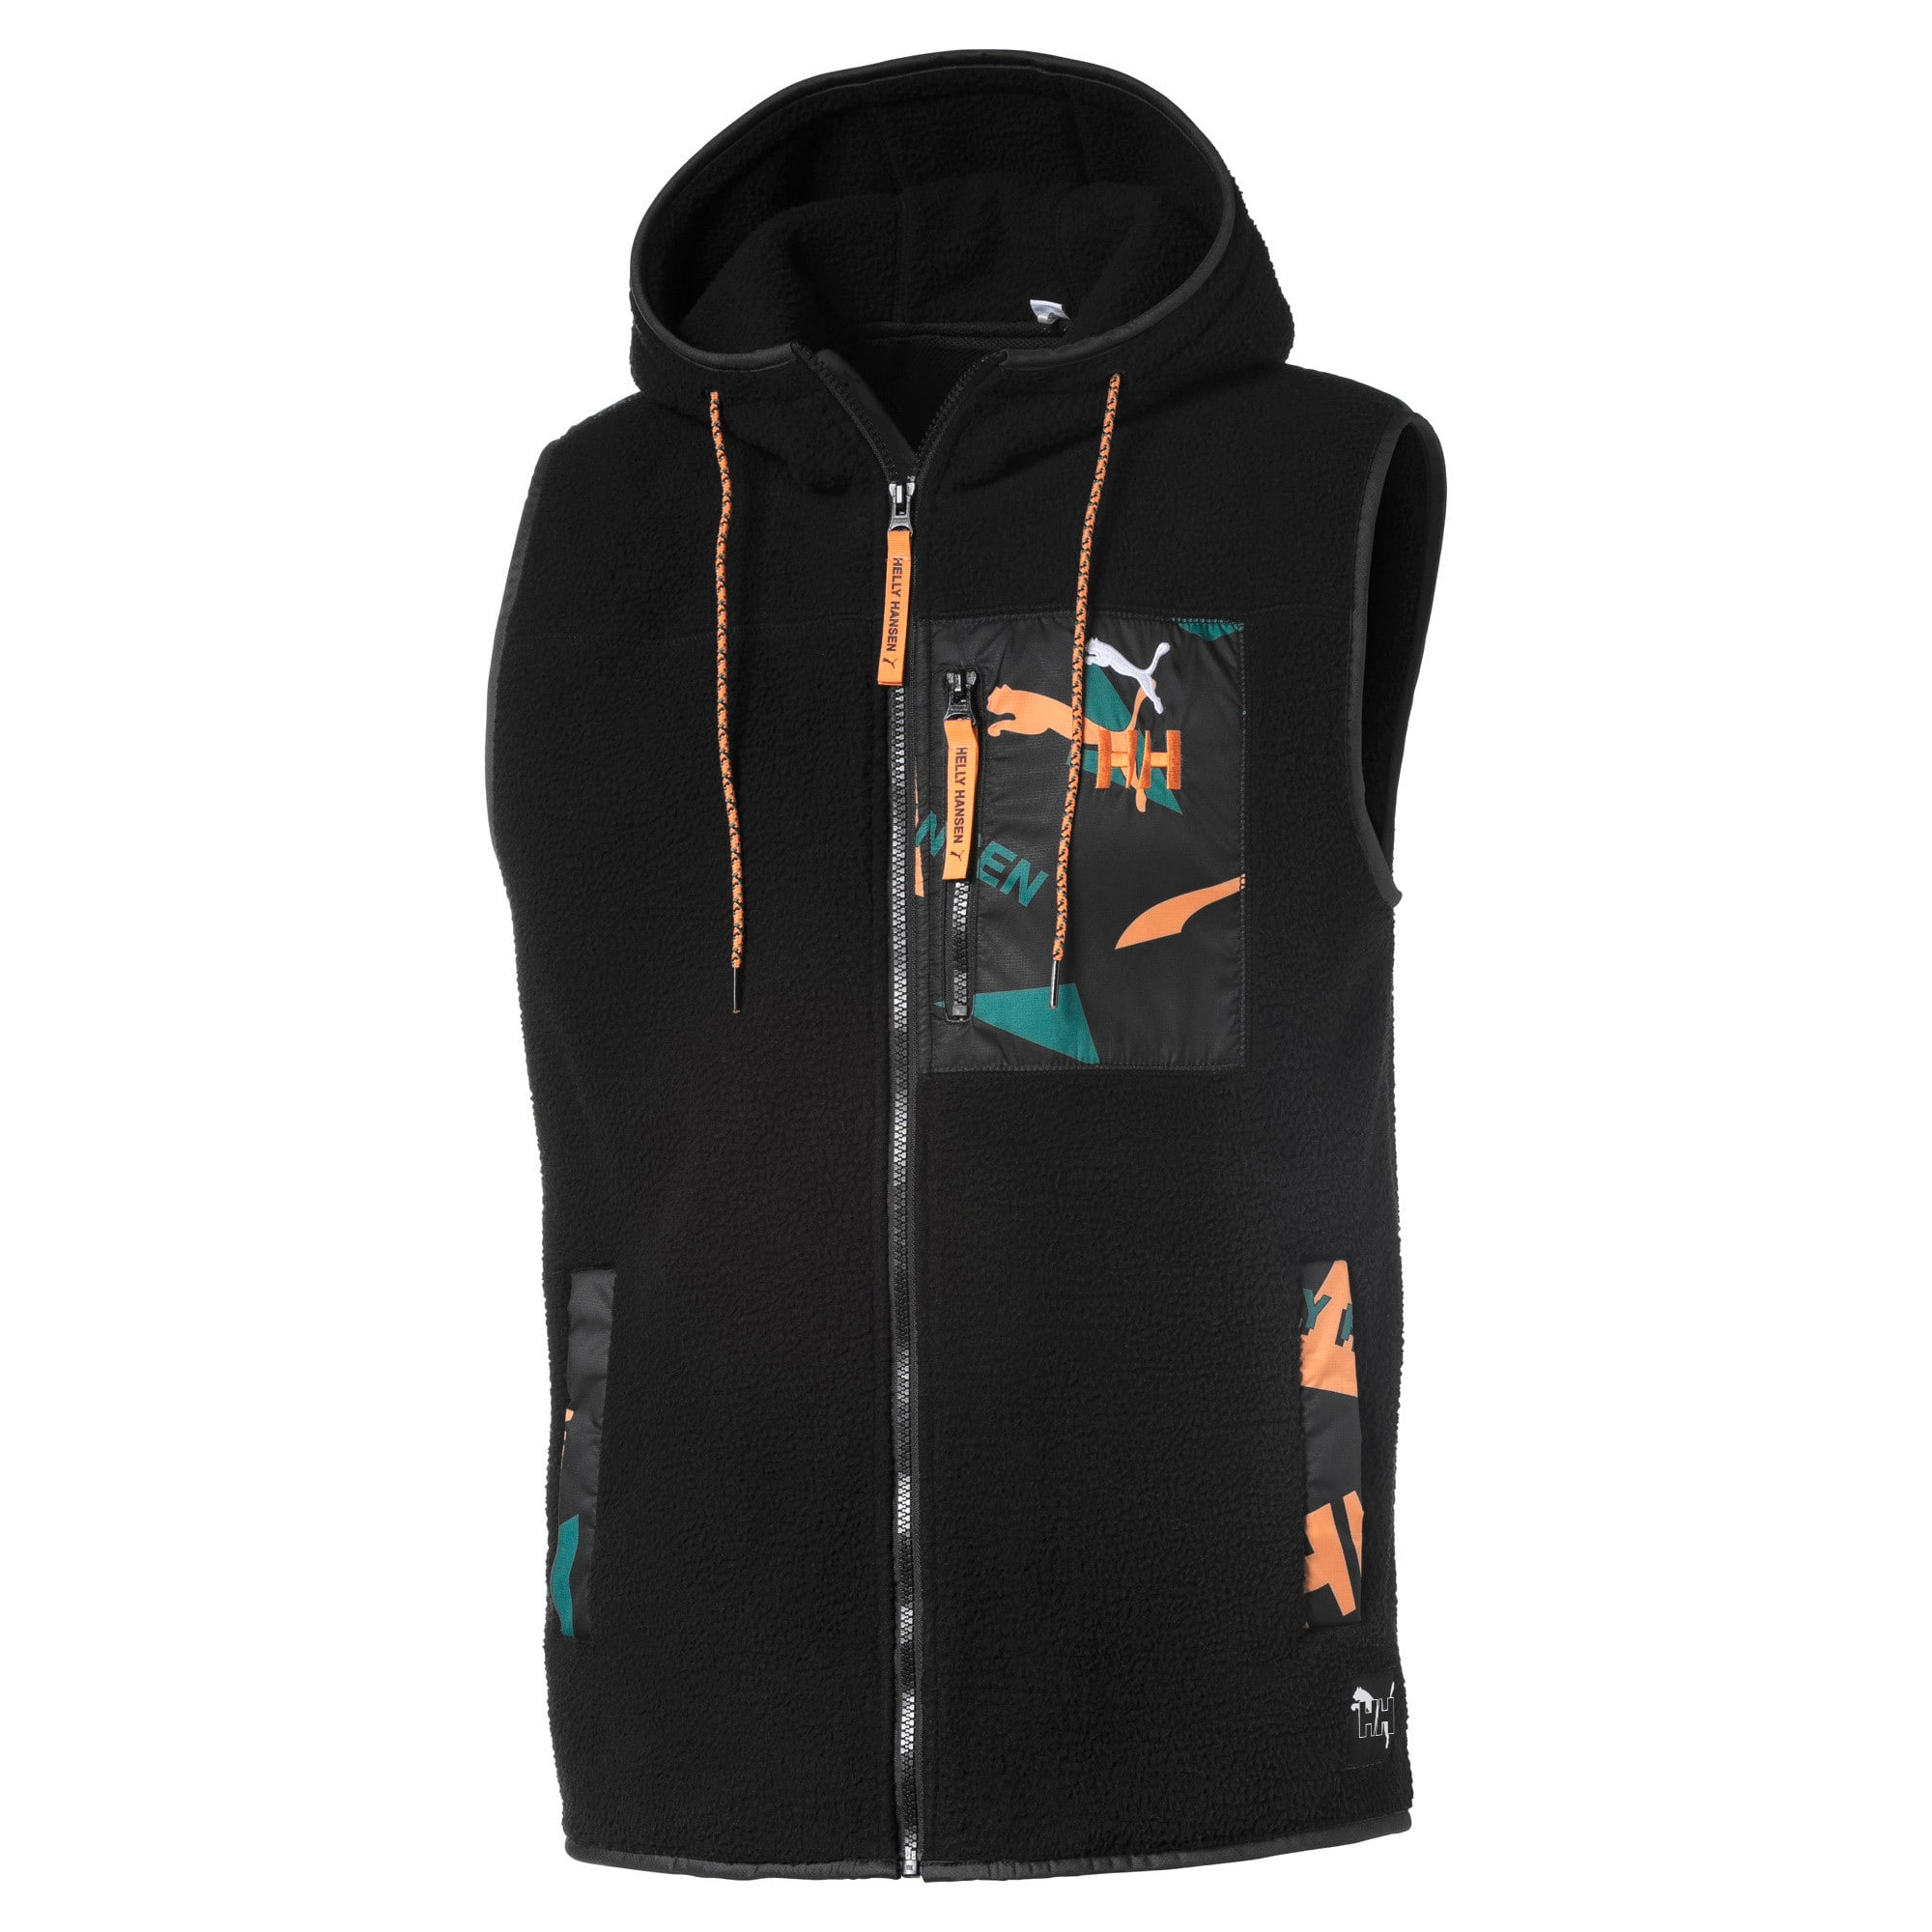 Thumbnail 1 of PUMA x HELLY HANSEN Polyester Weste, Puma Black, medium